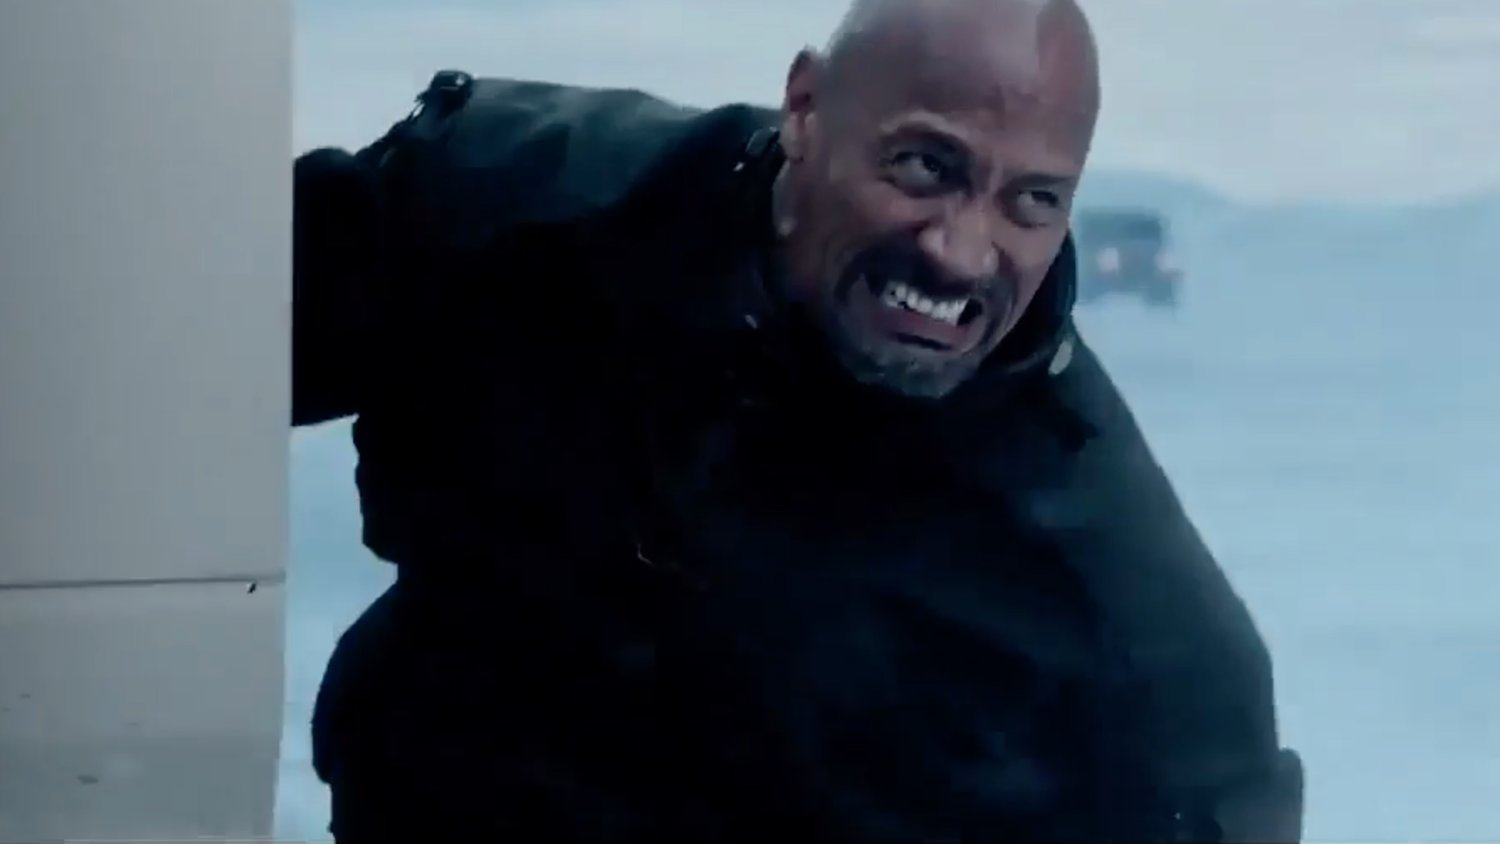 New Trailer for THE FATE OF THE FURIOUS Shows This Is the Most Over-the-Top Film in the Franchise Yet